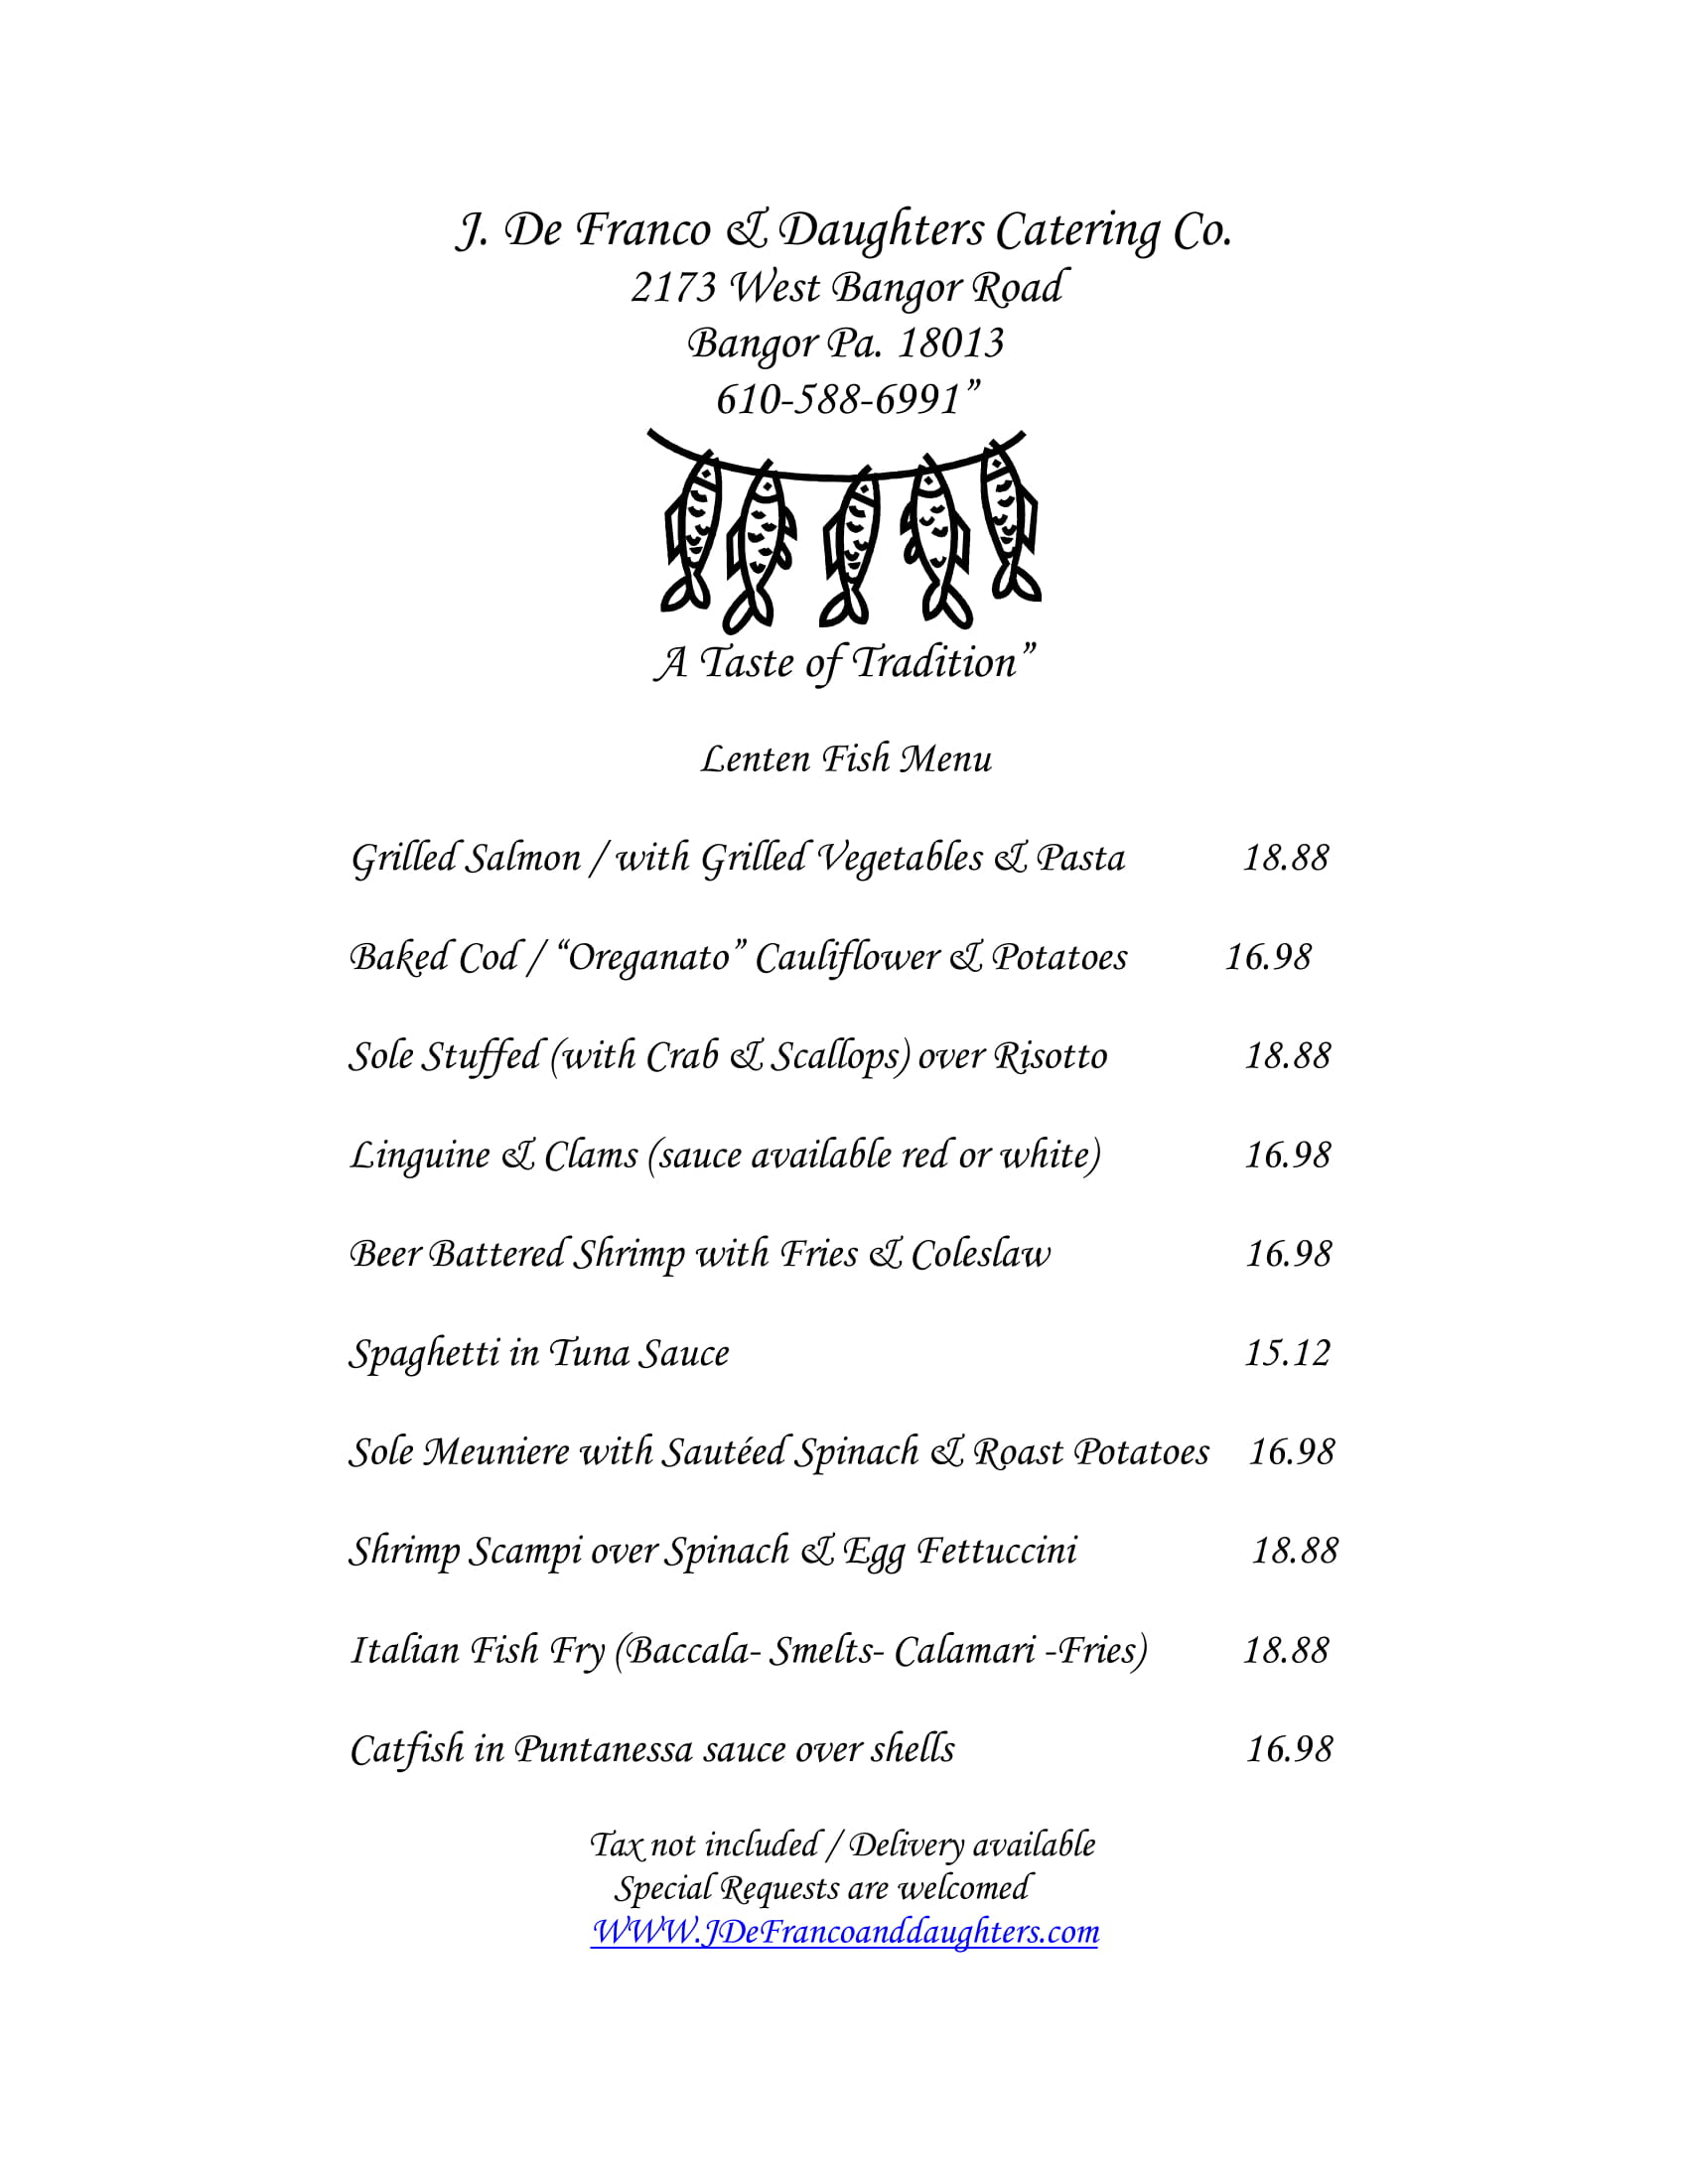 Click to view/print our lenten specials